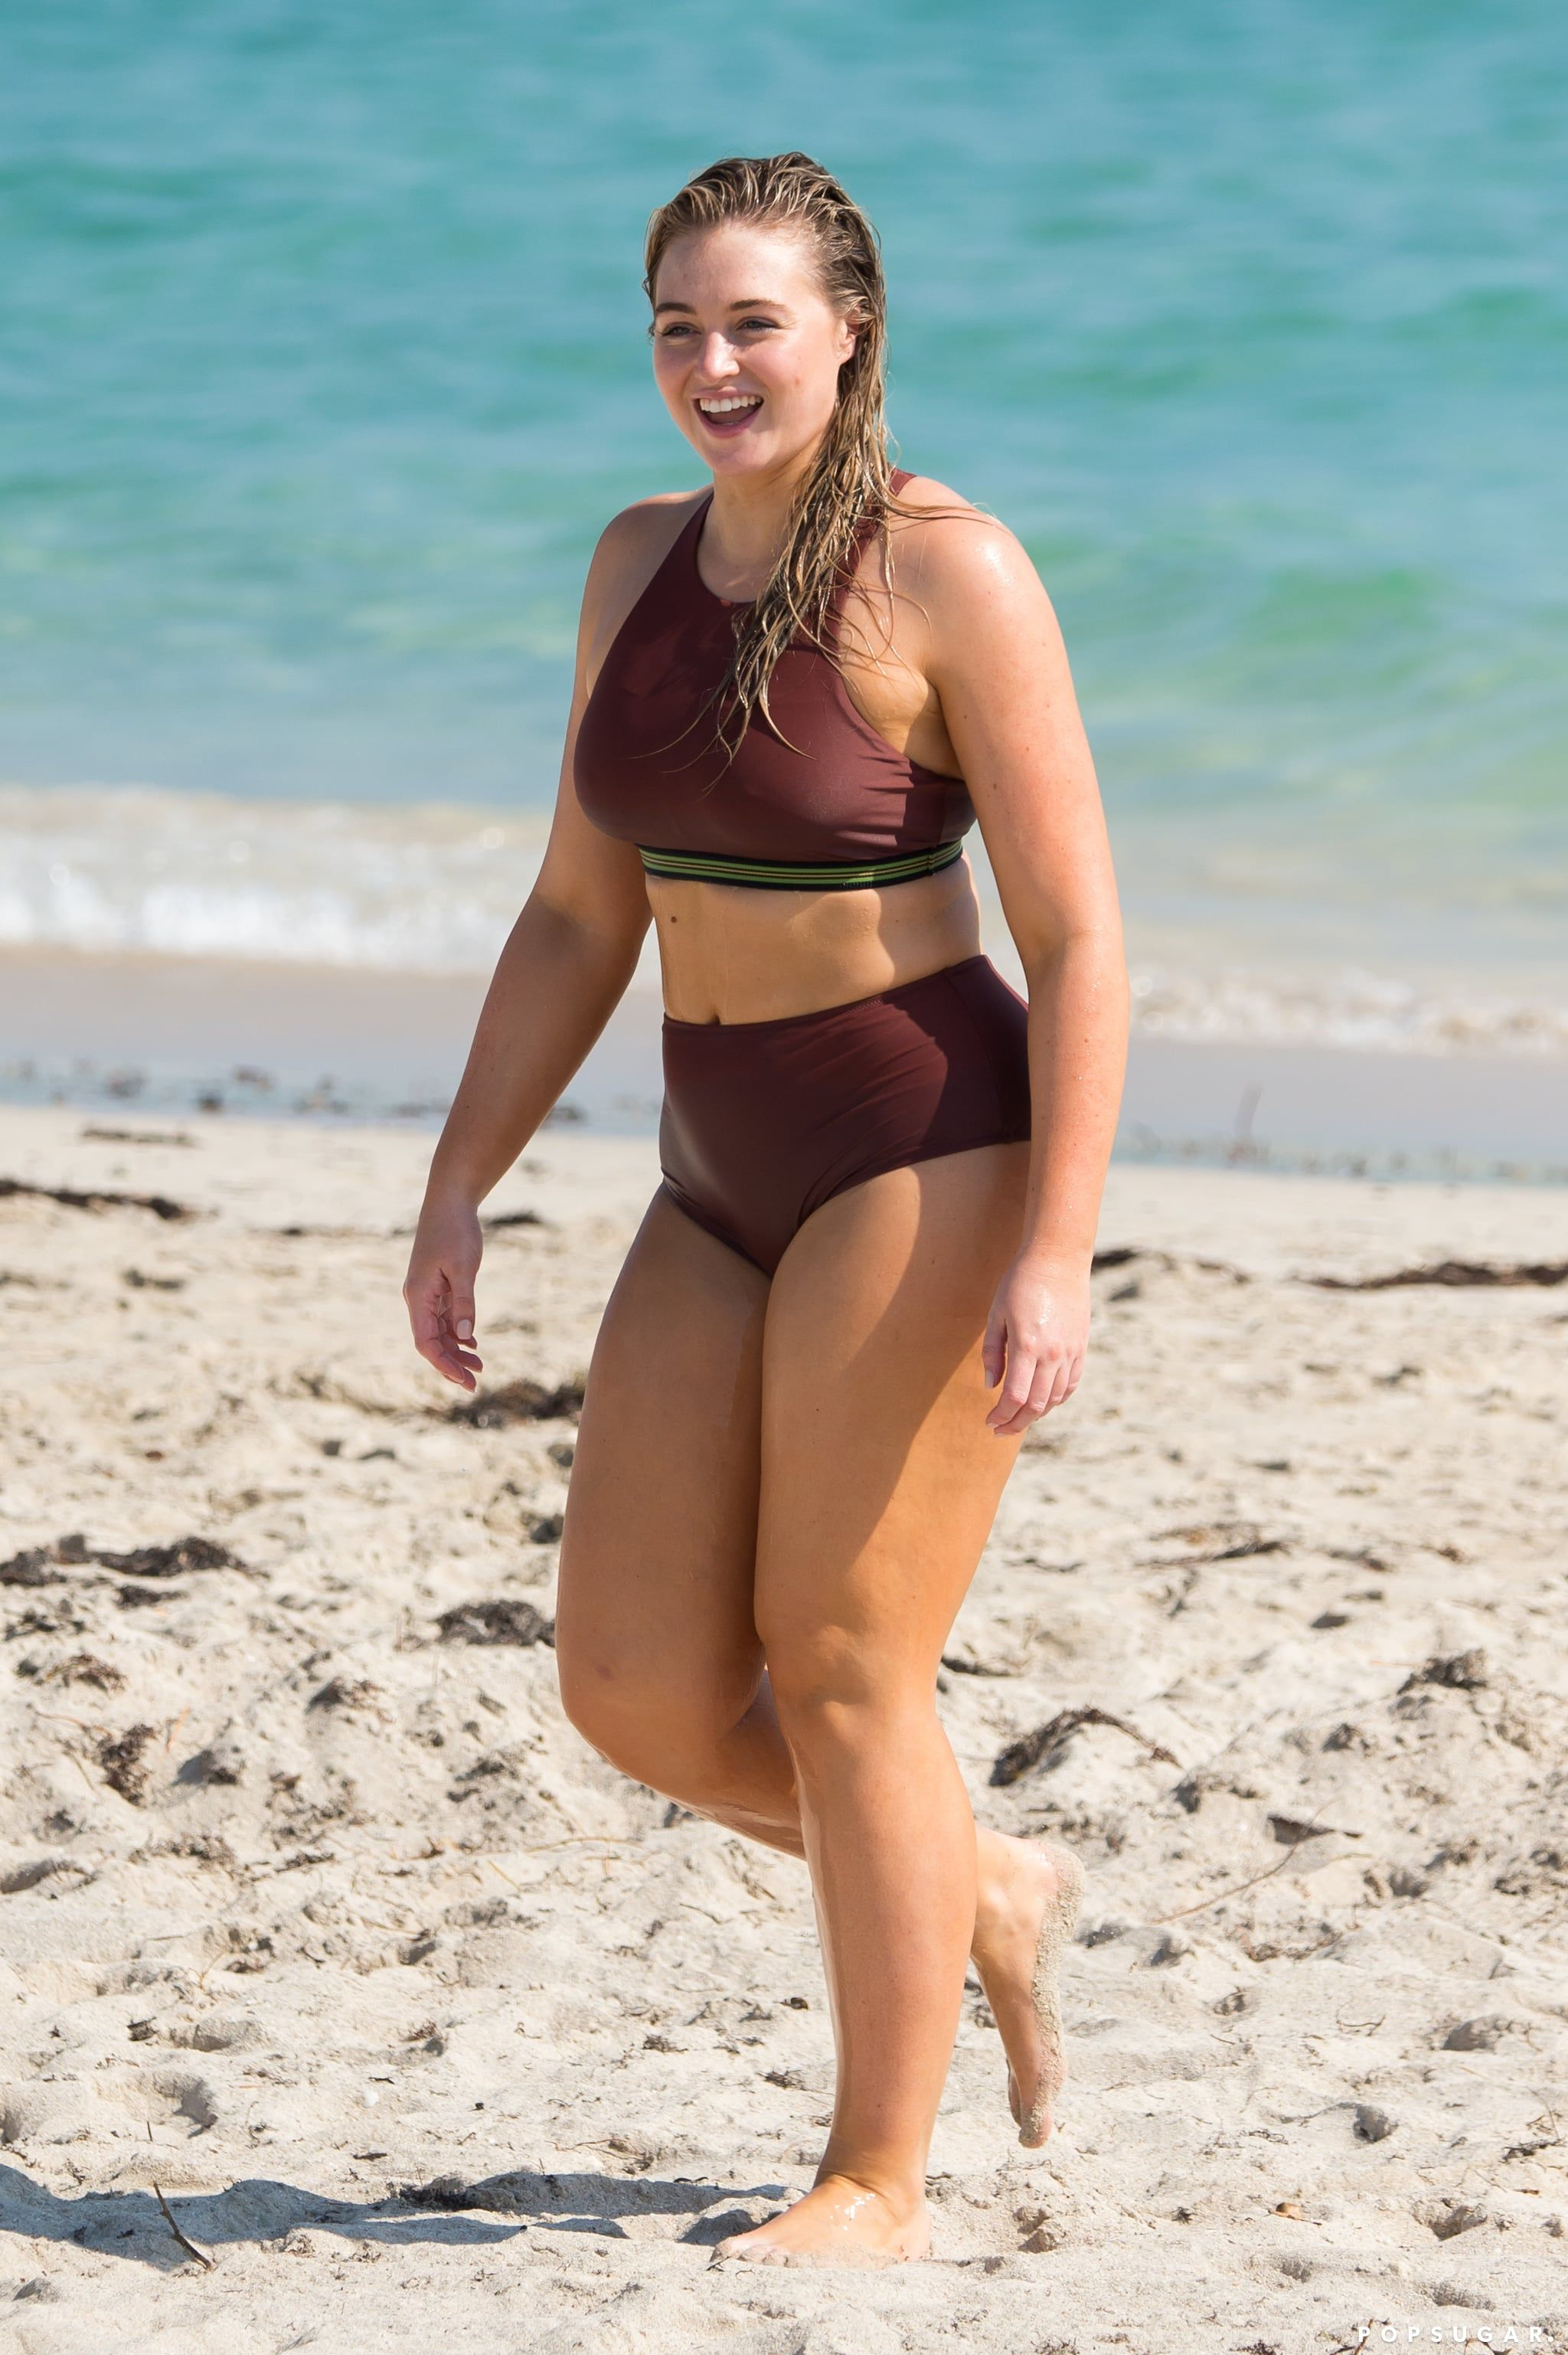 5ff5e2c22f Iskra Lawrence s Playful Beach Day Is Just What the Doctor Ordered to Cure  Your Winter Blues